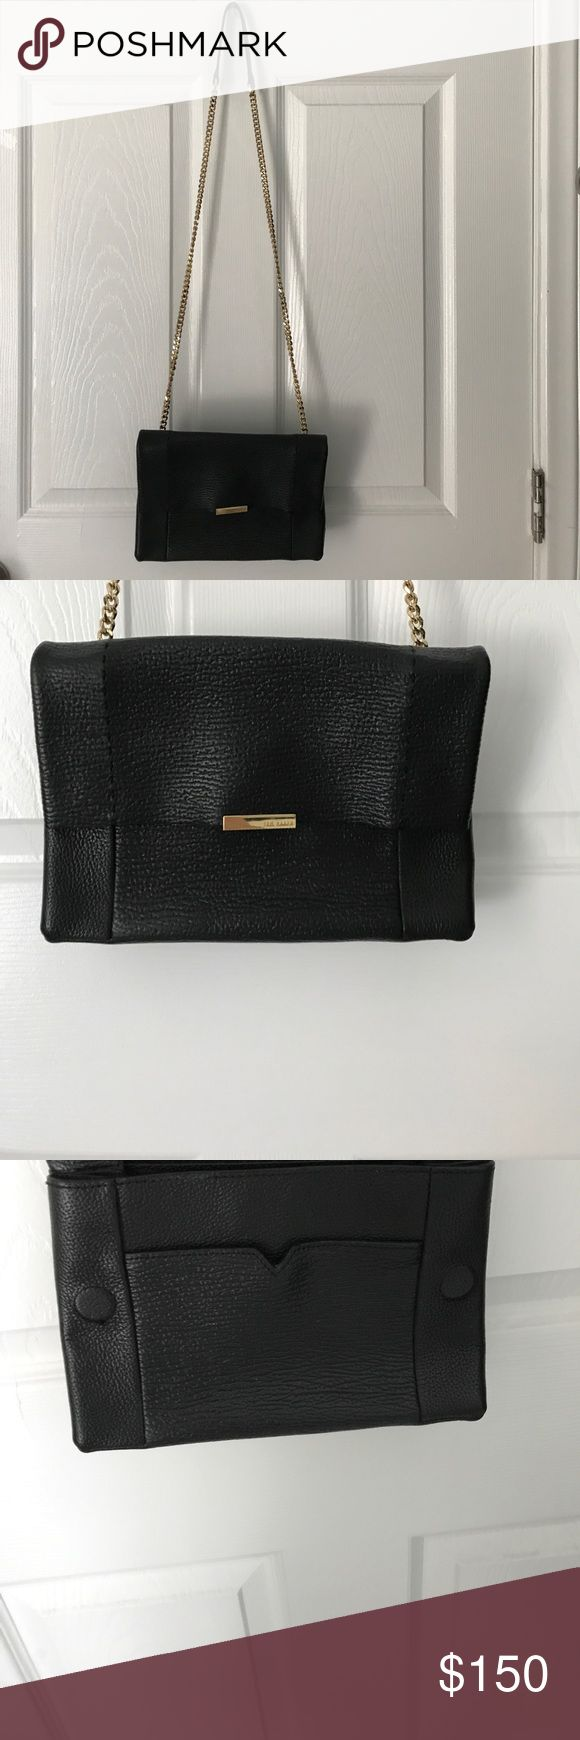 FINAL DISCOUNT 100% real leather $60 Excellent condition; like new; good quality brand; leather; lowered the price to $75 discounted price . Magnetic flip; easy to open and close; formal or casual look; FINAL PRICE Ted Baker Bags Crossbody Bags